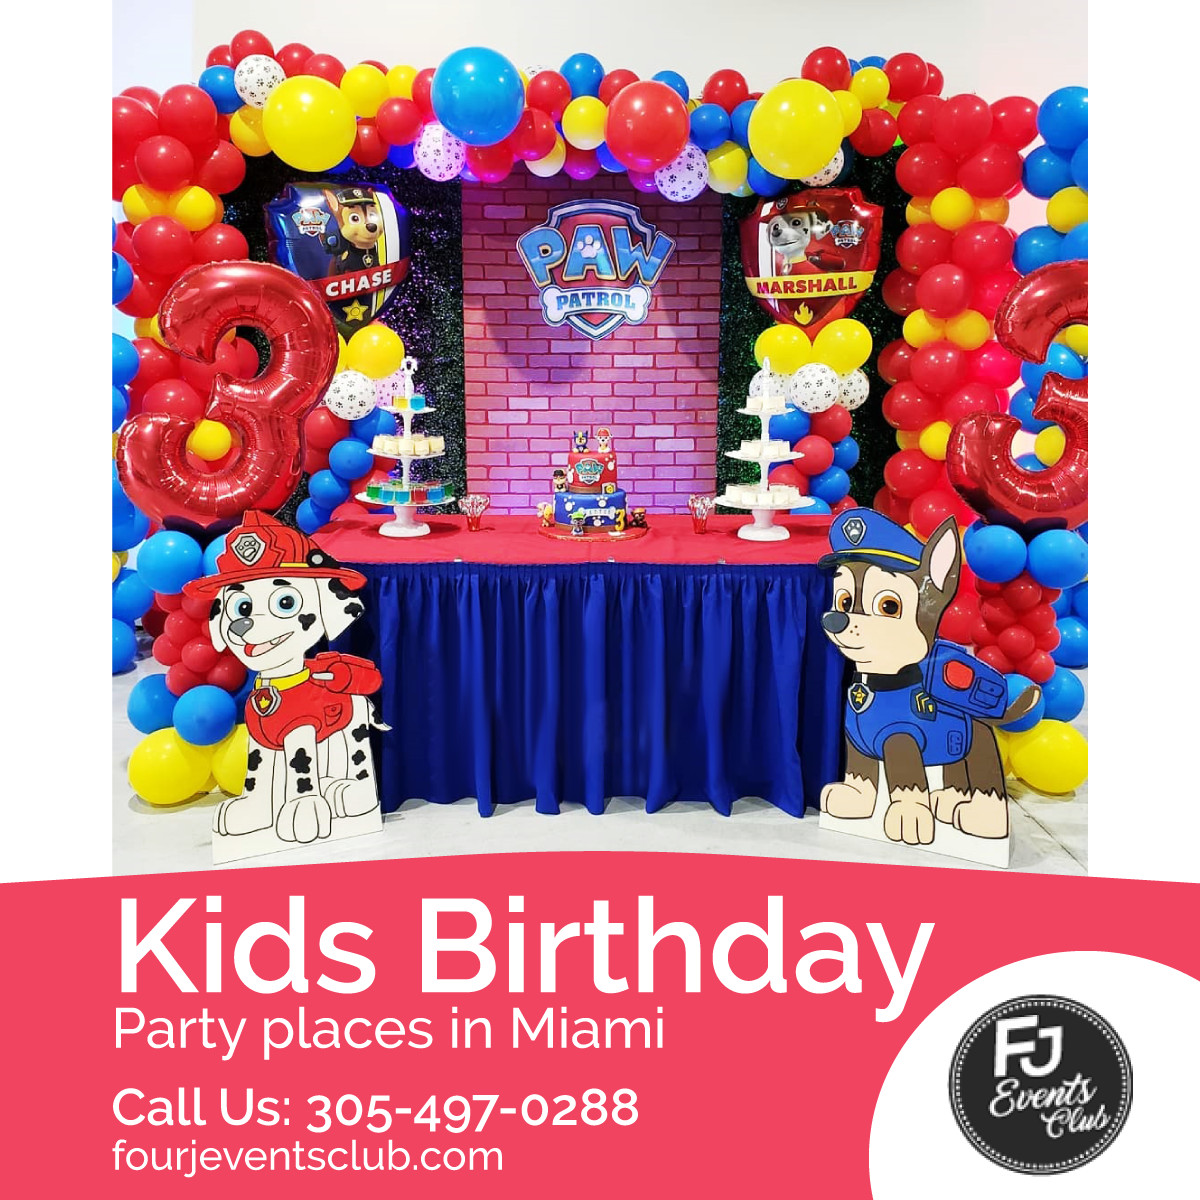 Kids Birthday Party Miami  Choose the Ideal Venue For your Kid's Birthday Party